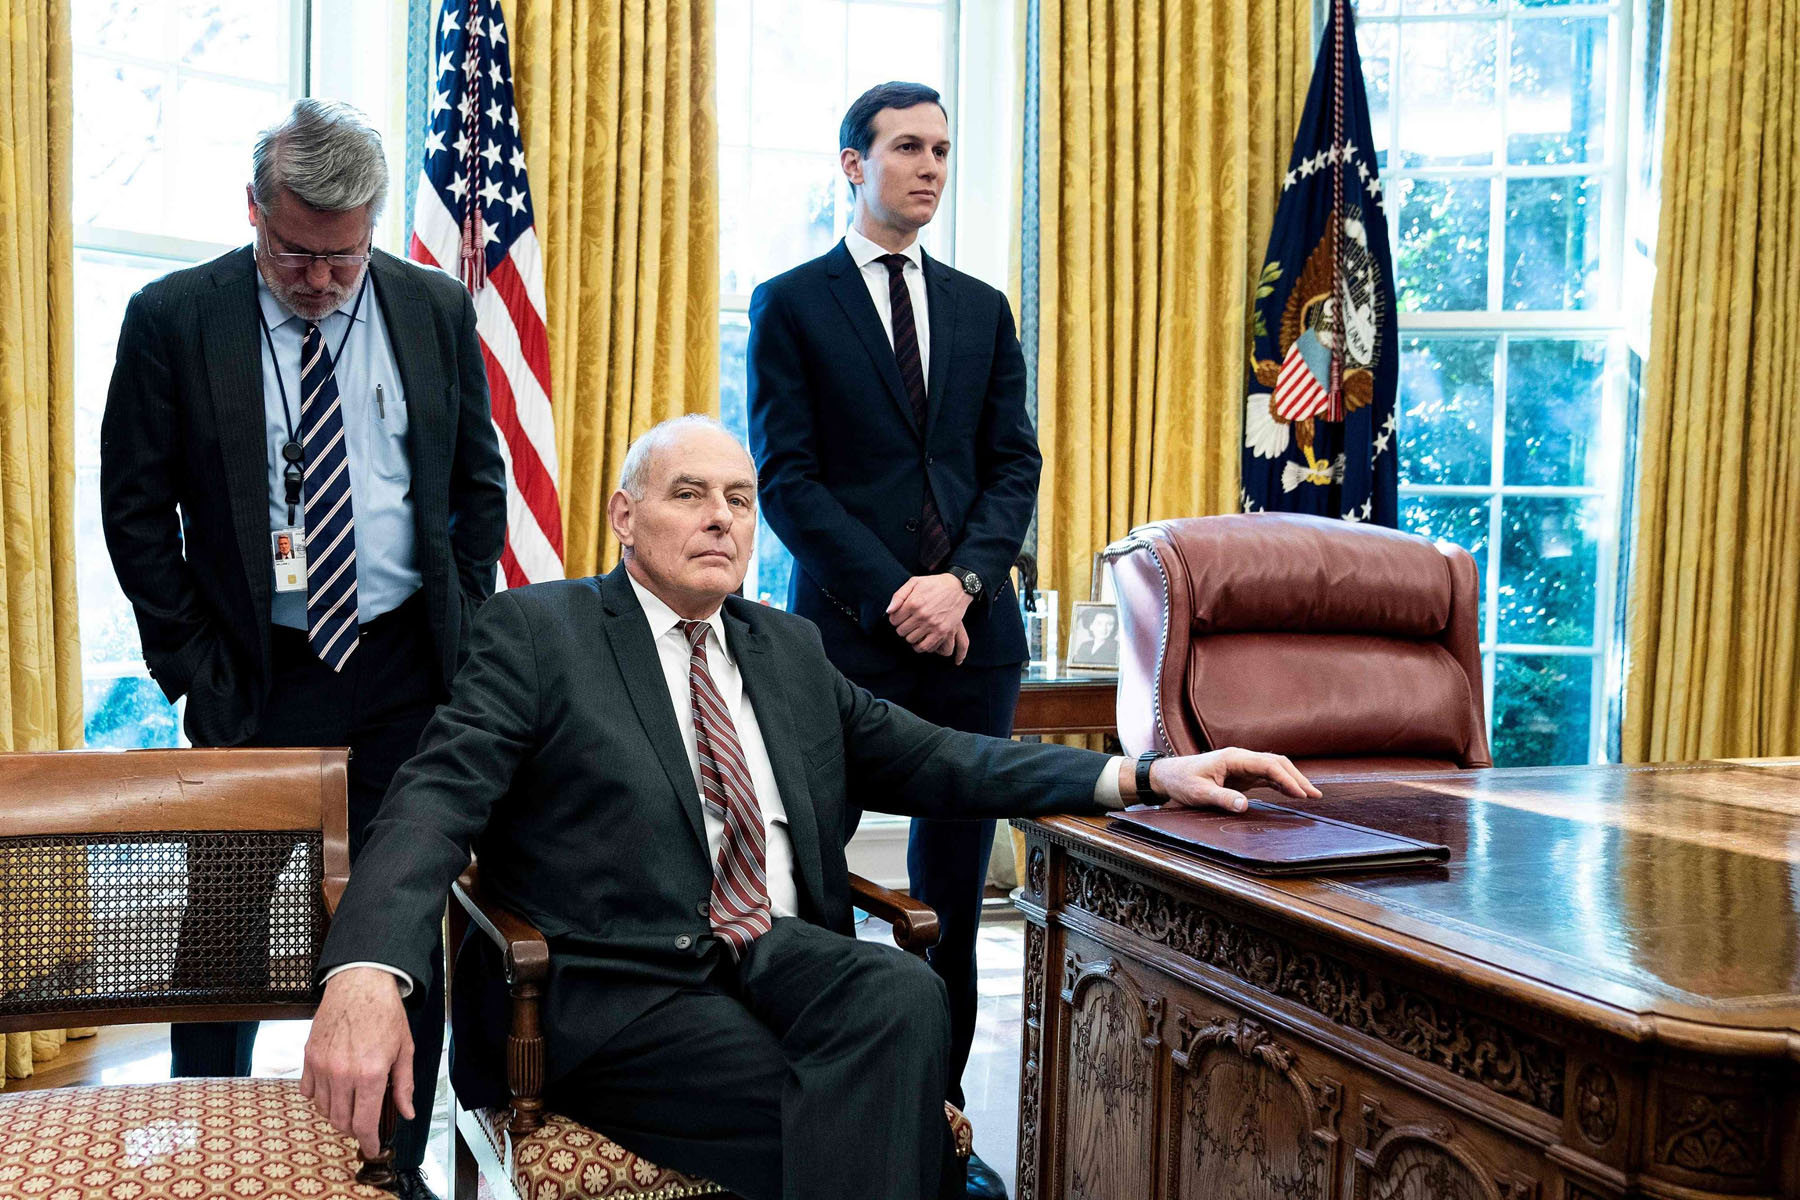 White House communications director Bill Shine (L), White House Chief of Staff John Kelly (C), and Senior Advisor Jared Kushner in the Oval Office of the White House, December 11. (AFP)